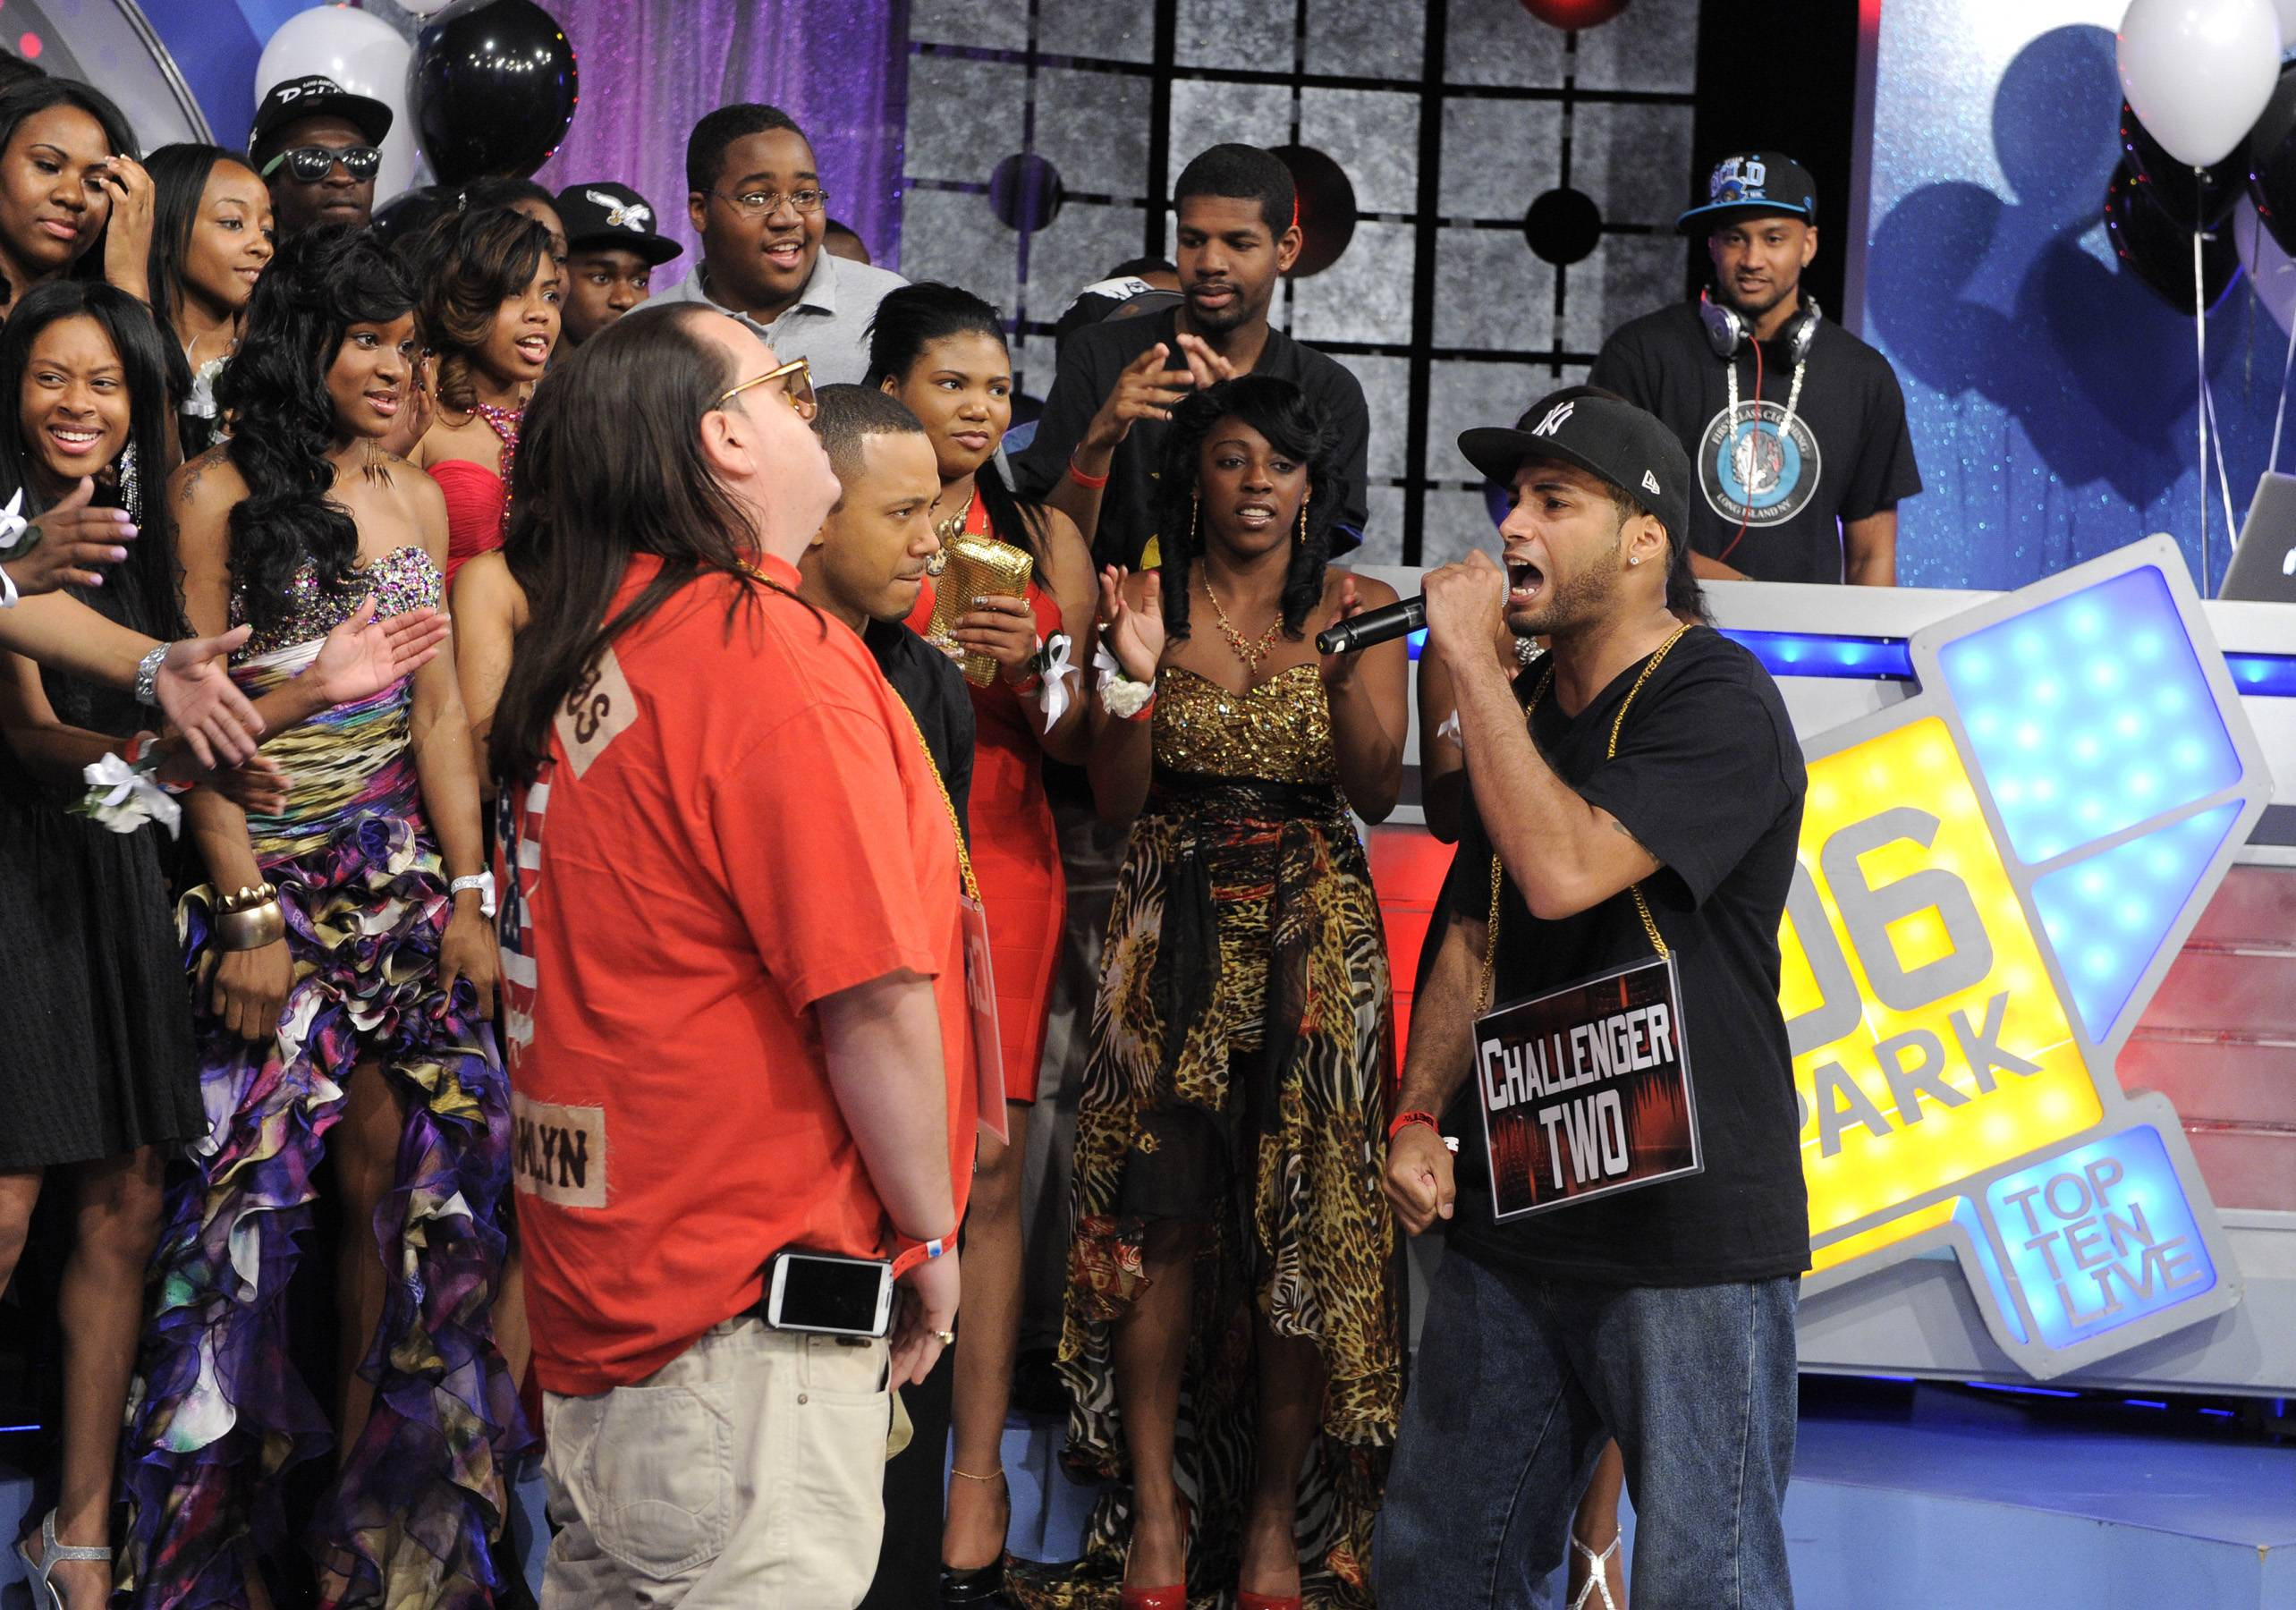 I Get It - Freestyle Friday contestants Interstate Fatz and Jayo the Beatslayer at 106 & Park, May 25, 2012. (Photo: John Ricard / BET)